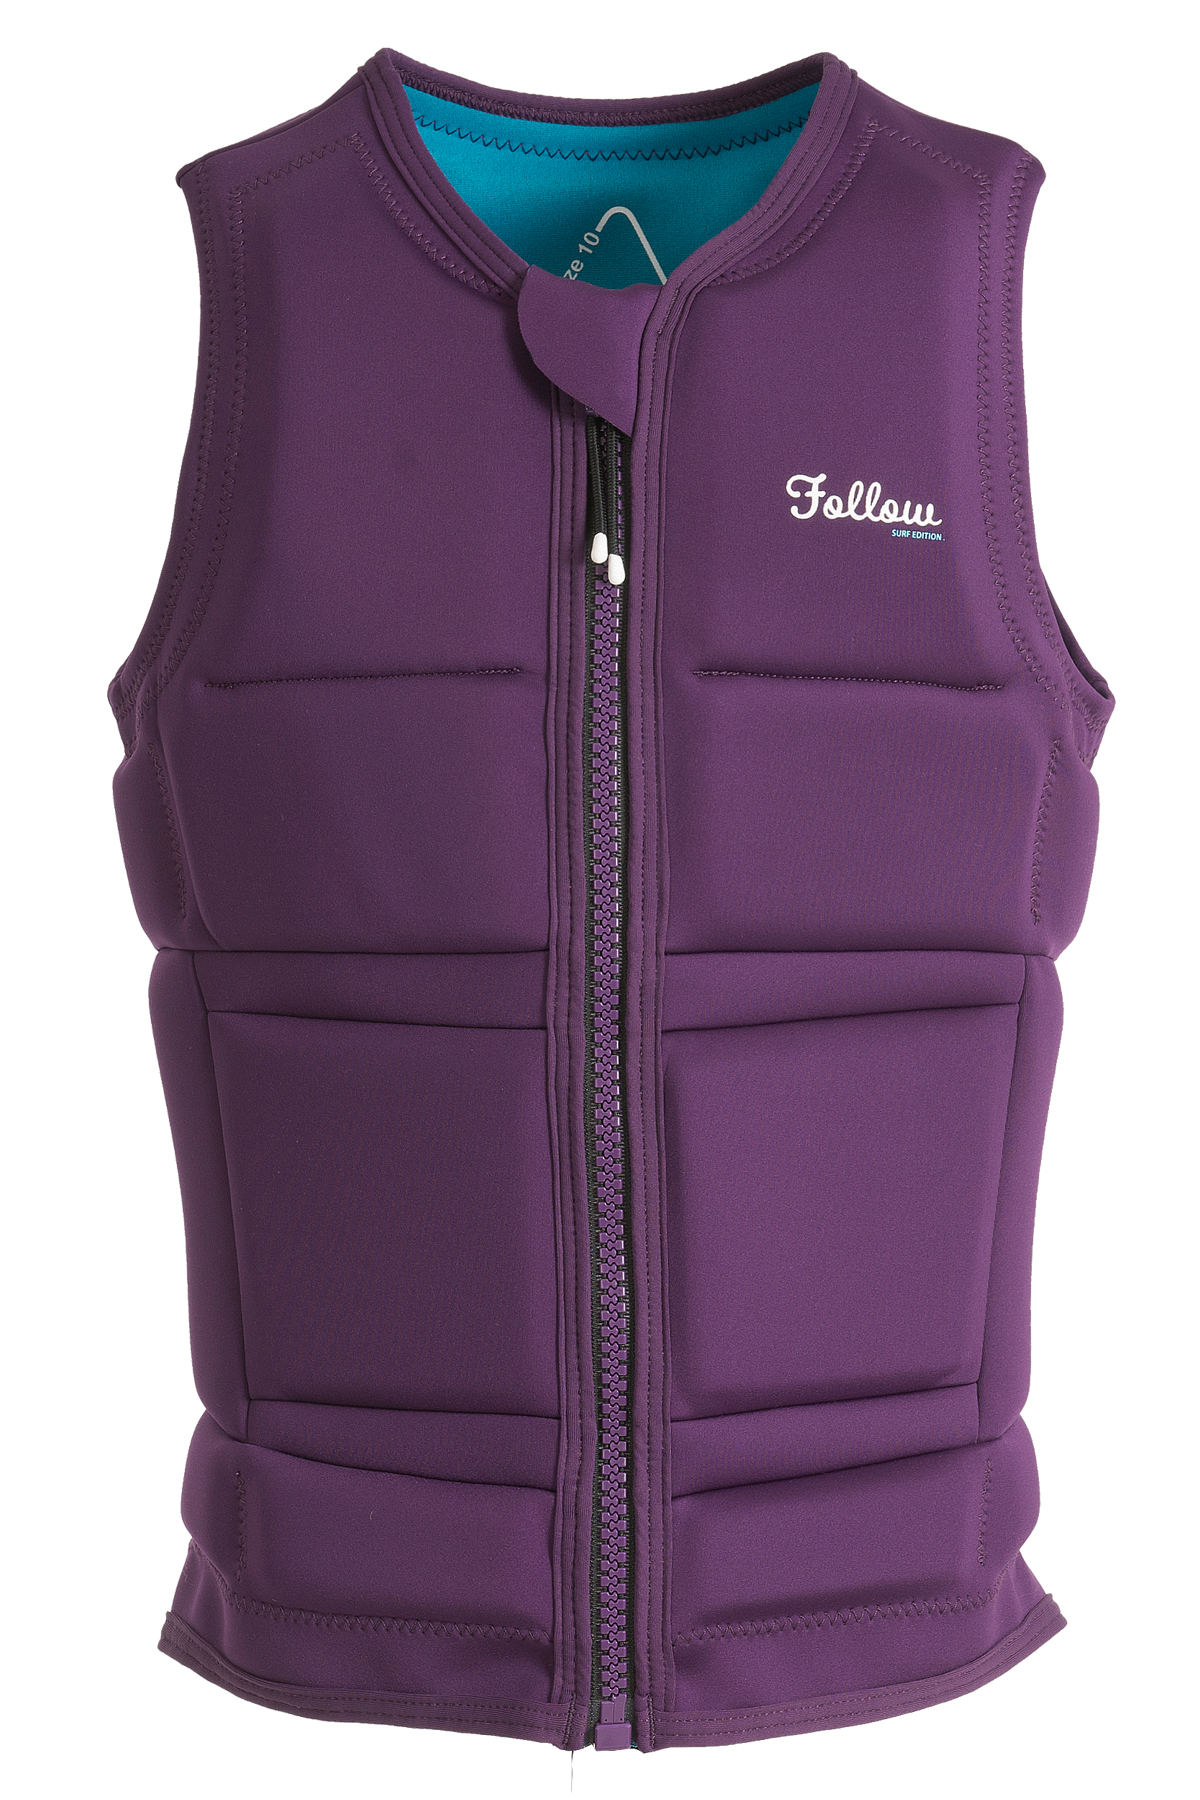 LADIES SURF IMPACT VEST  - PURPLE FOLLOW 2019